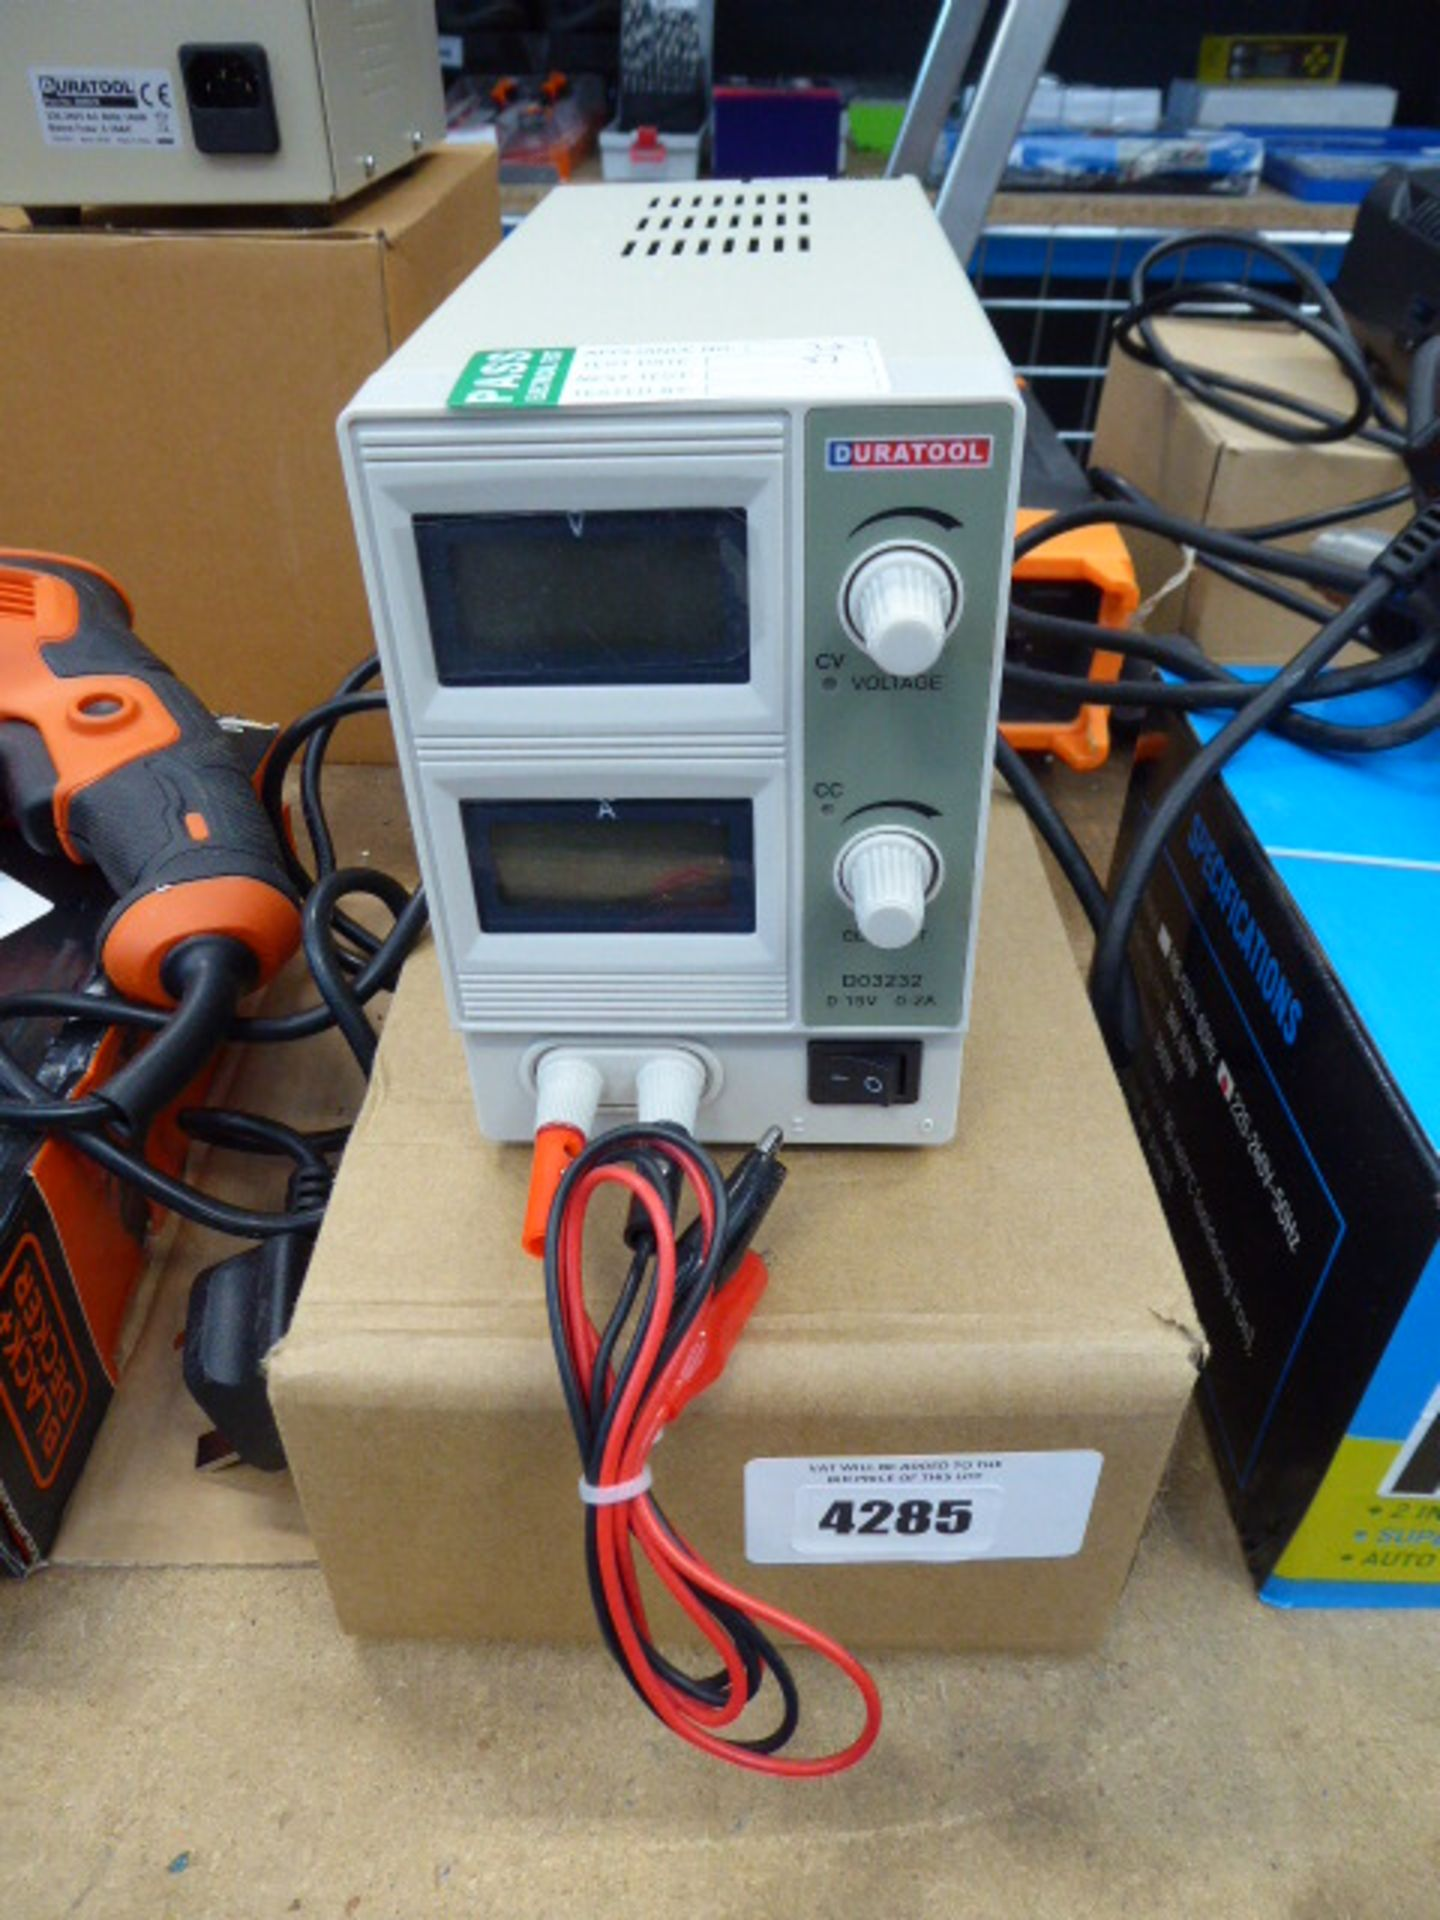 Small Duratool power supply